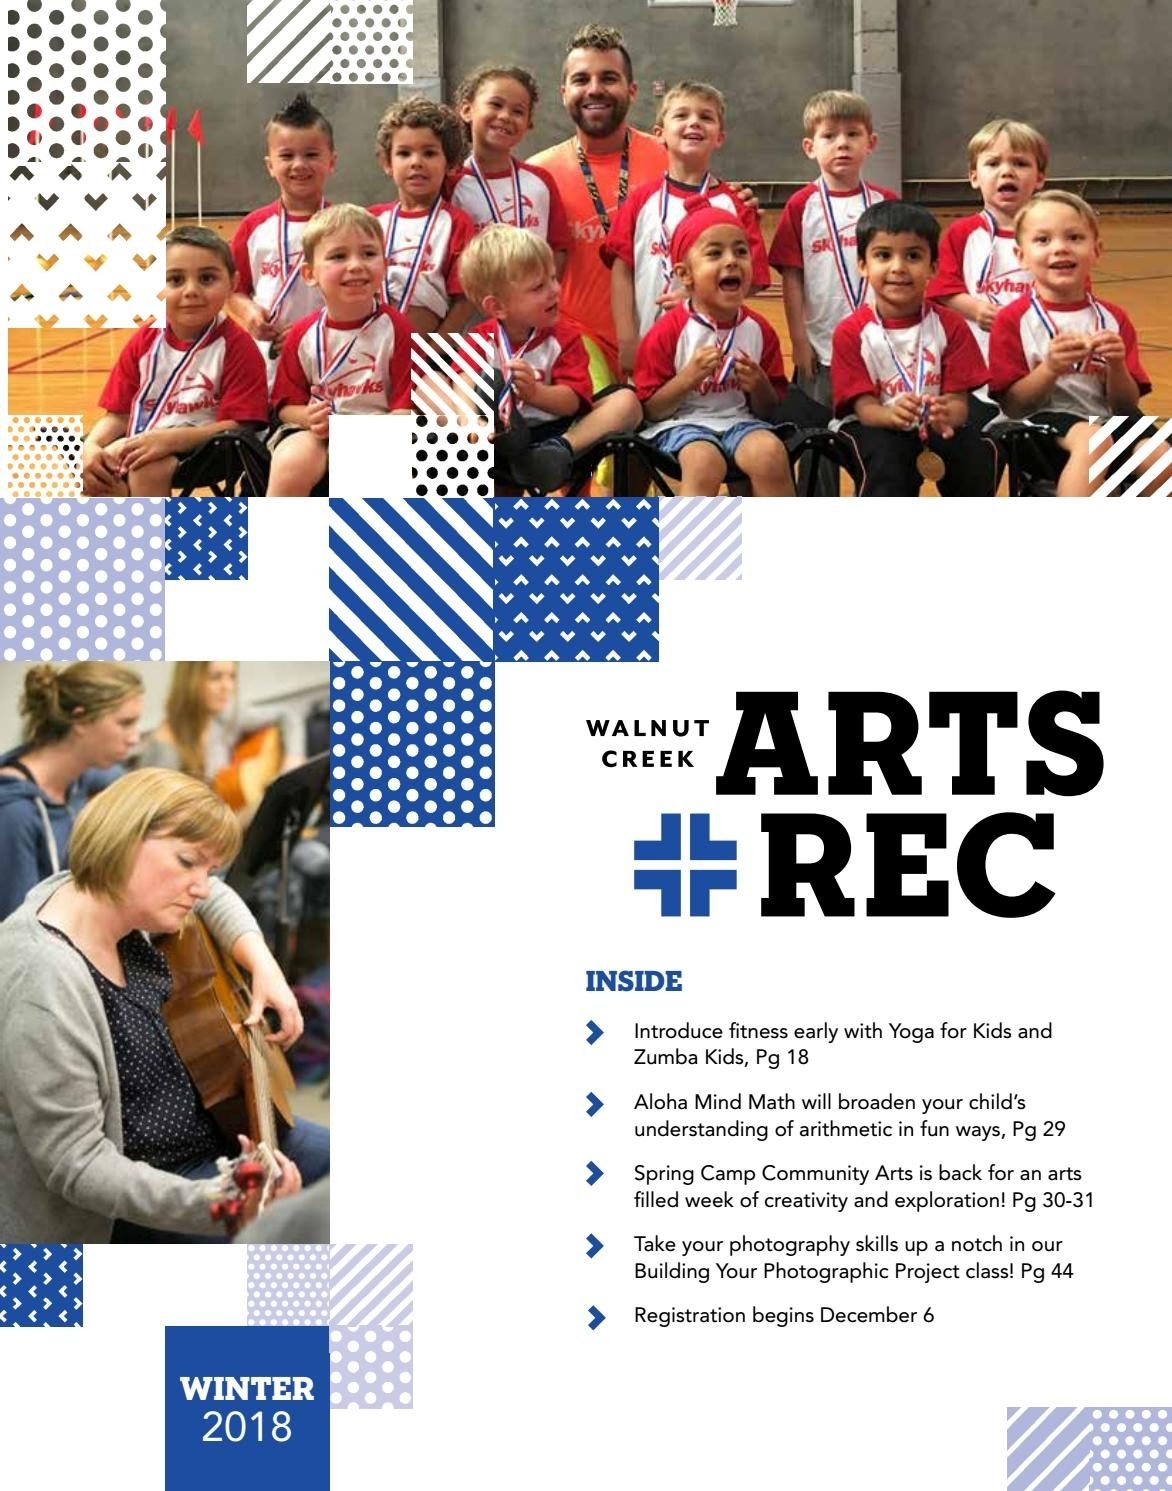 City Of Walnut Creek Guide To Arts + Rec - Winter 2018City Of within Acrylic Wall Displays Fitness Schedules